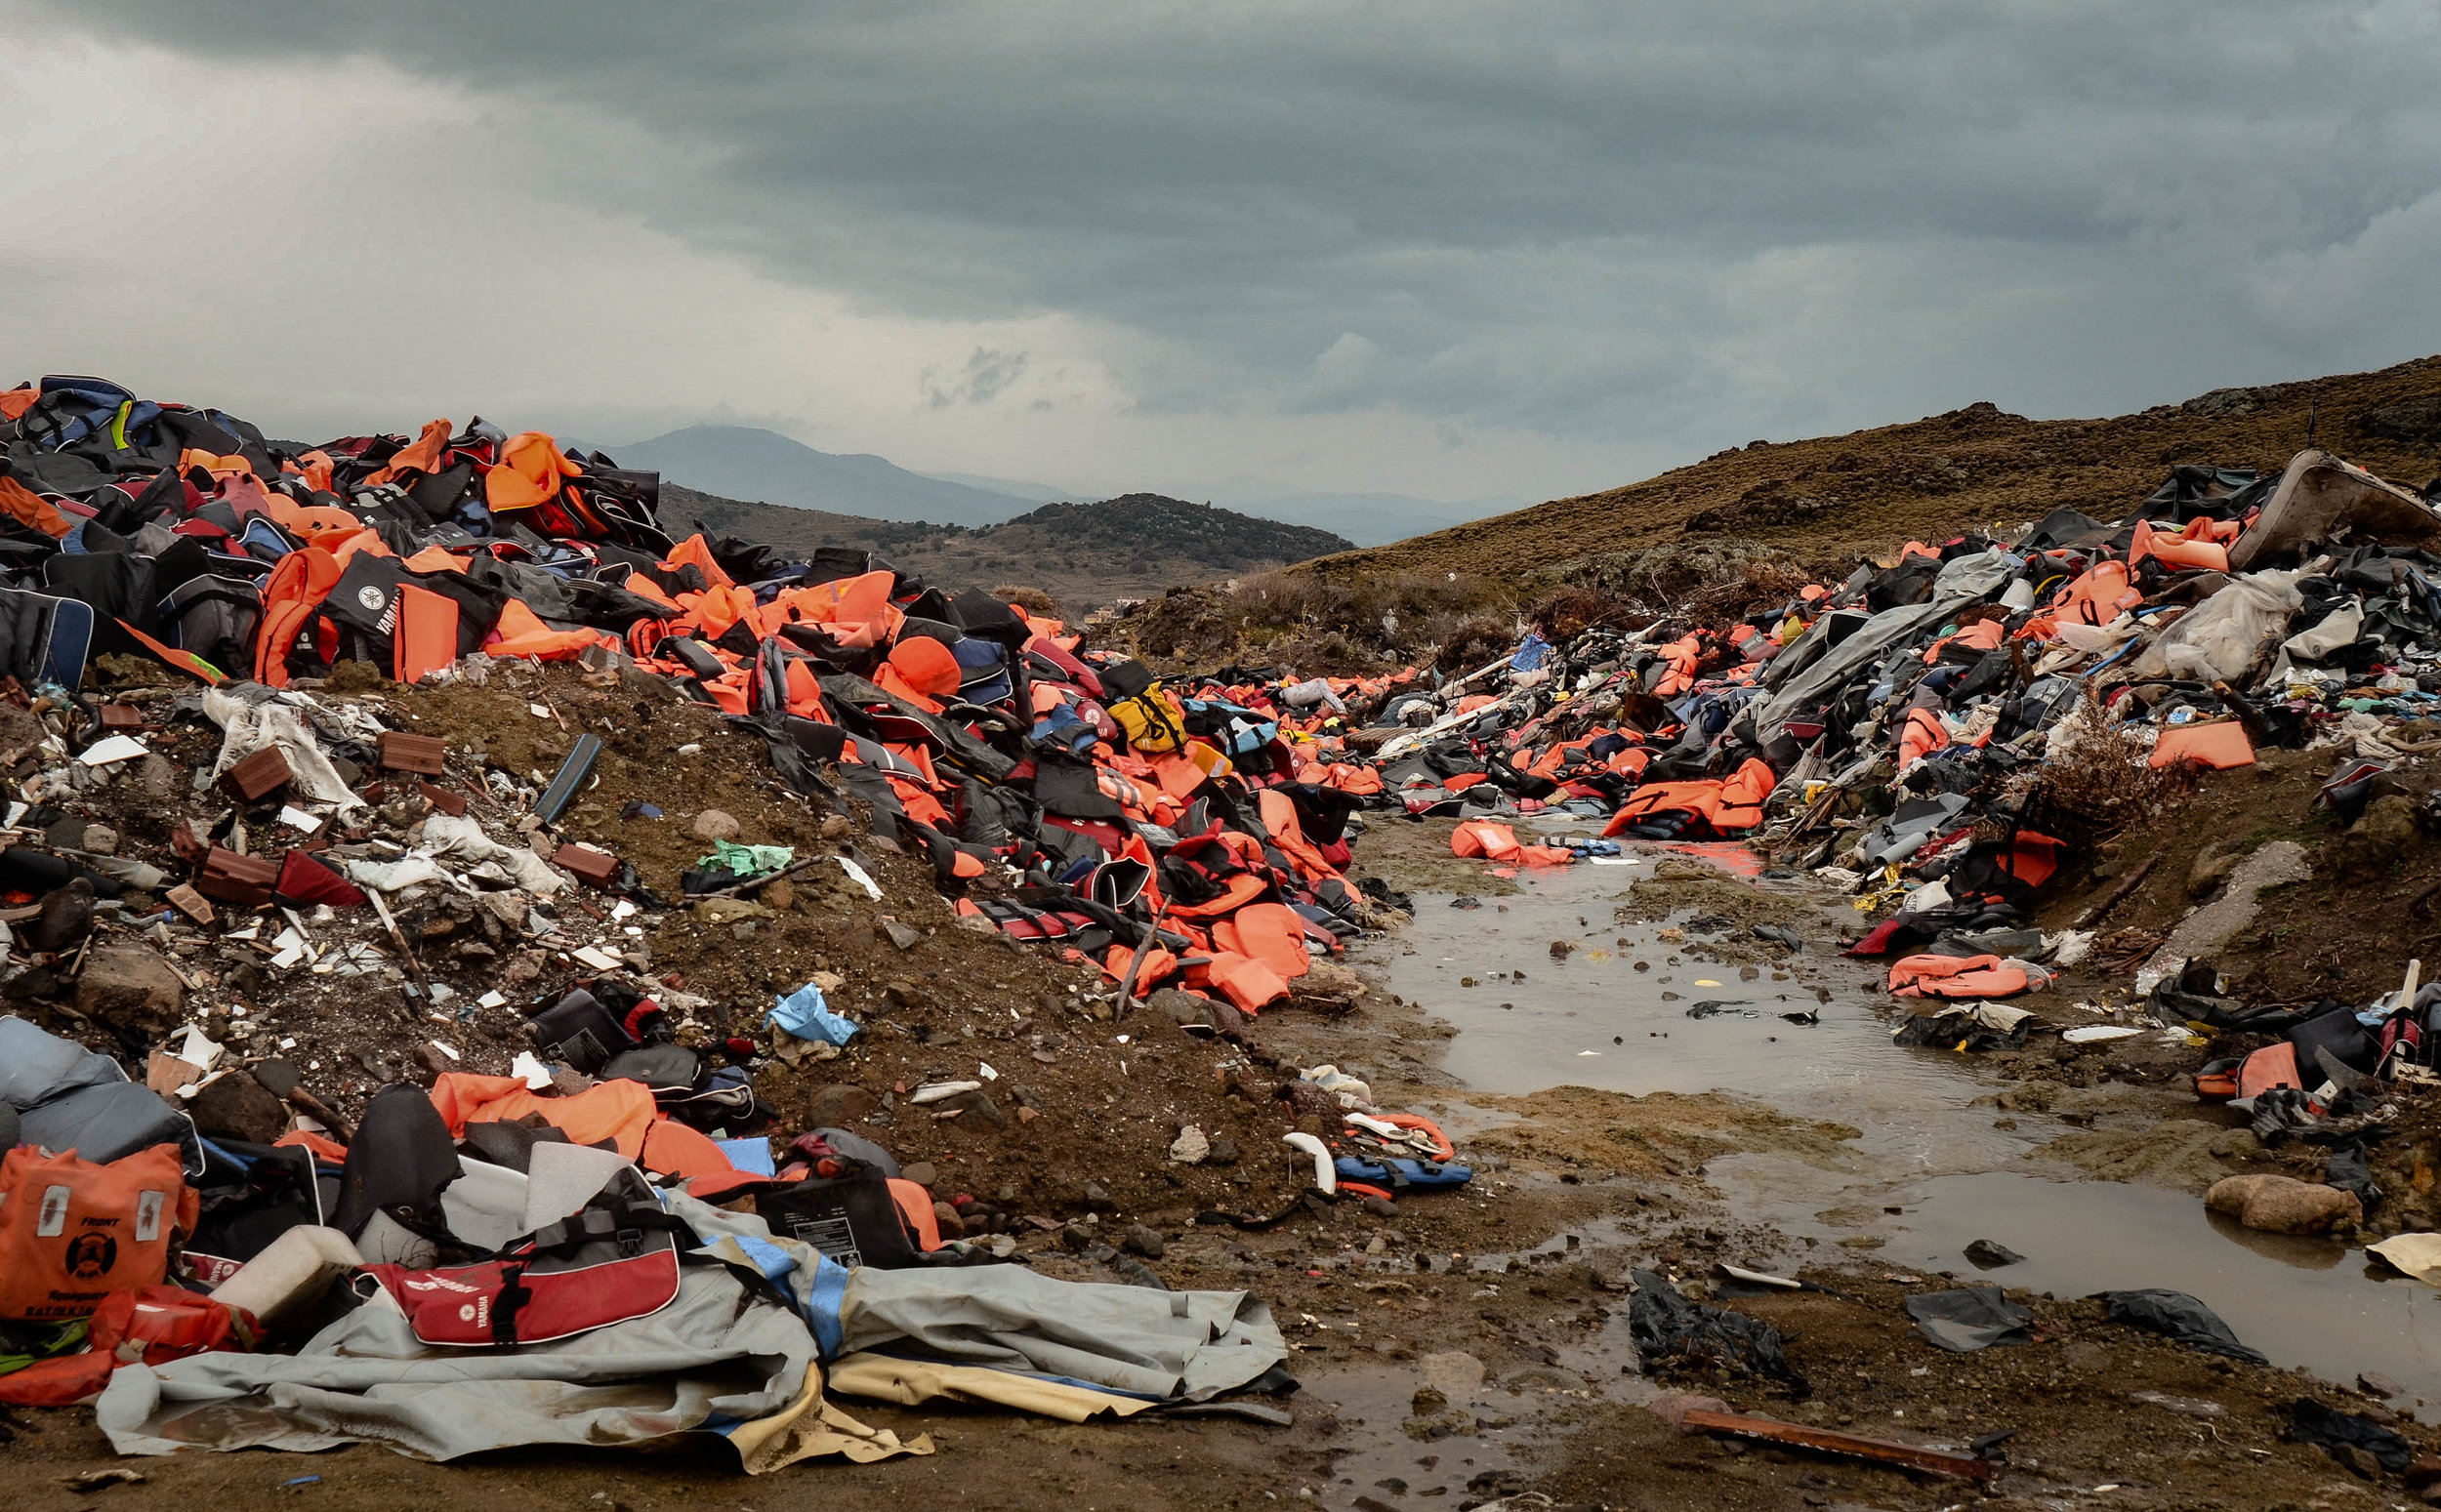 Life vest graveyard on Lesvos island, Greece. Photo by Everita Silina.